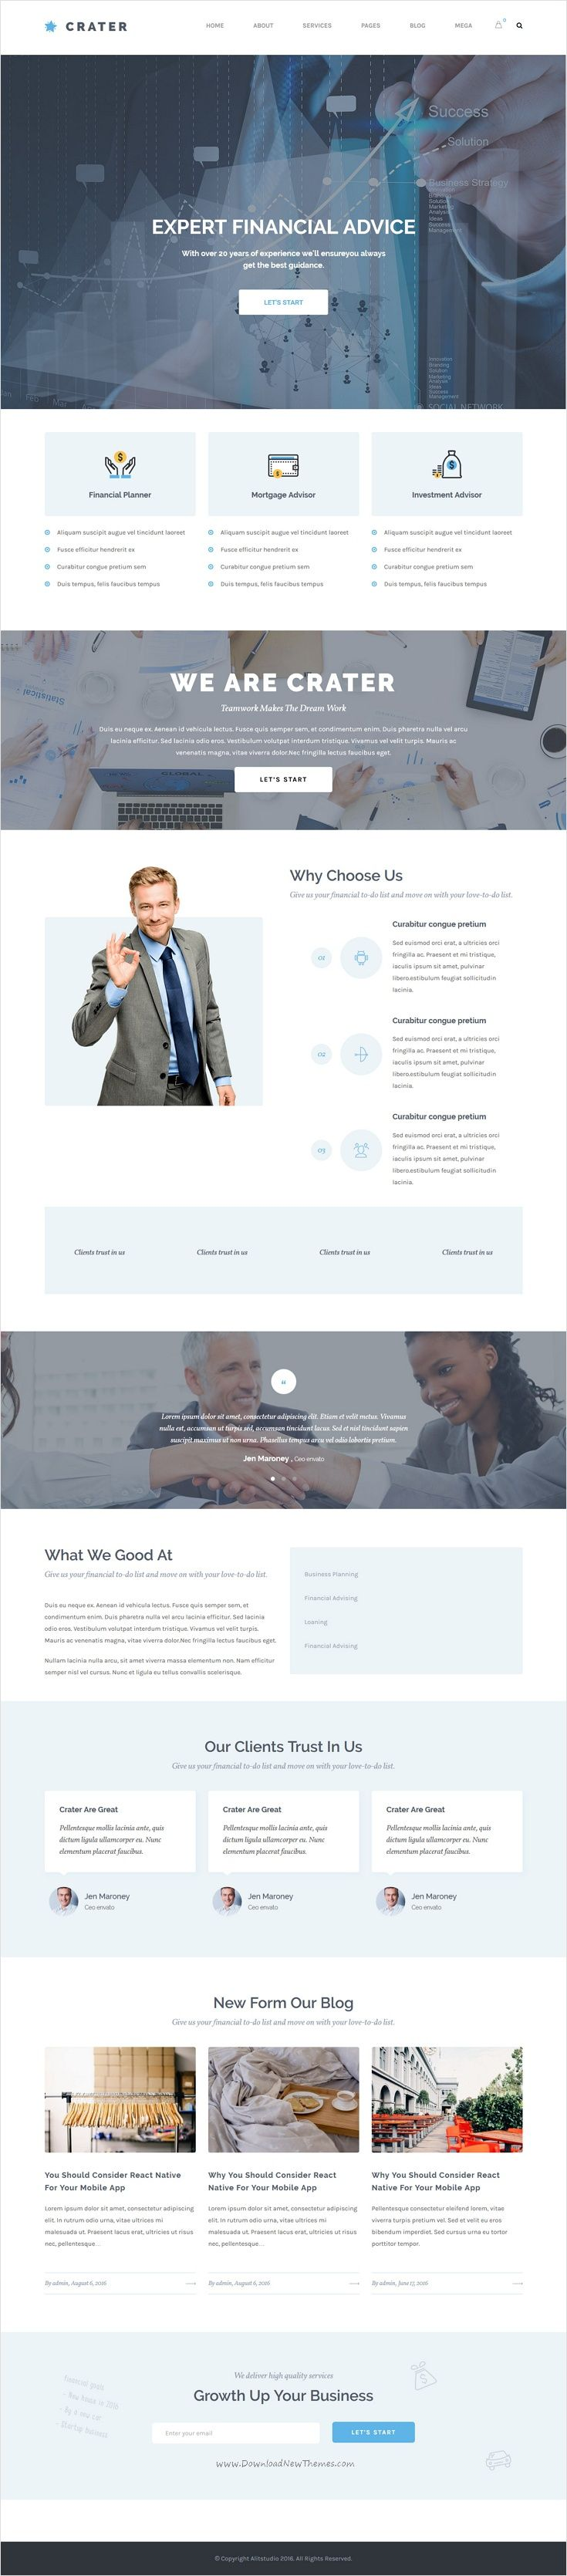 Crater is a wonderful #responsive #WordPress template for consulting #business or banking & financial website with 6 different homepage layouts download now➩ https://themeforest.net/item/crater-consulting-business-finance-wordpress-theme/17617893?ref=Datasata